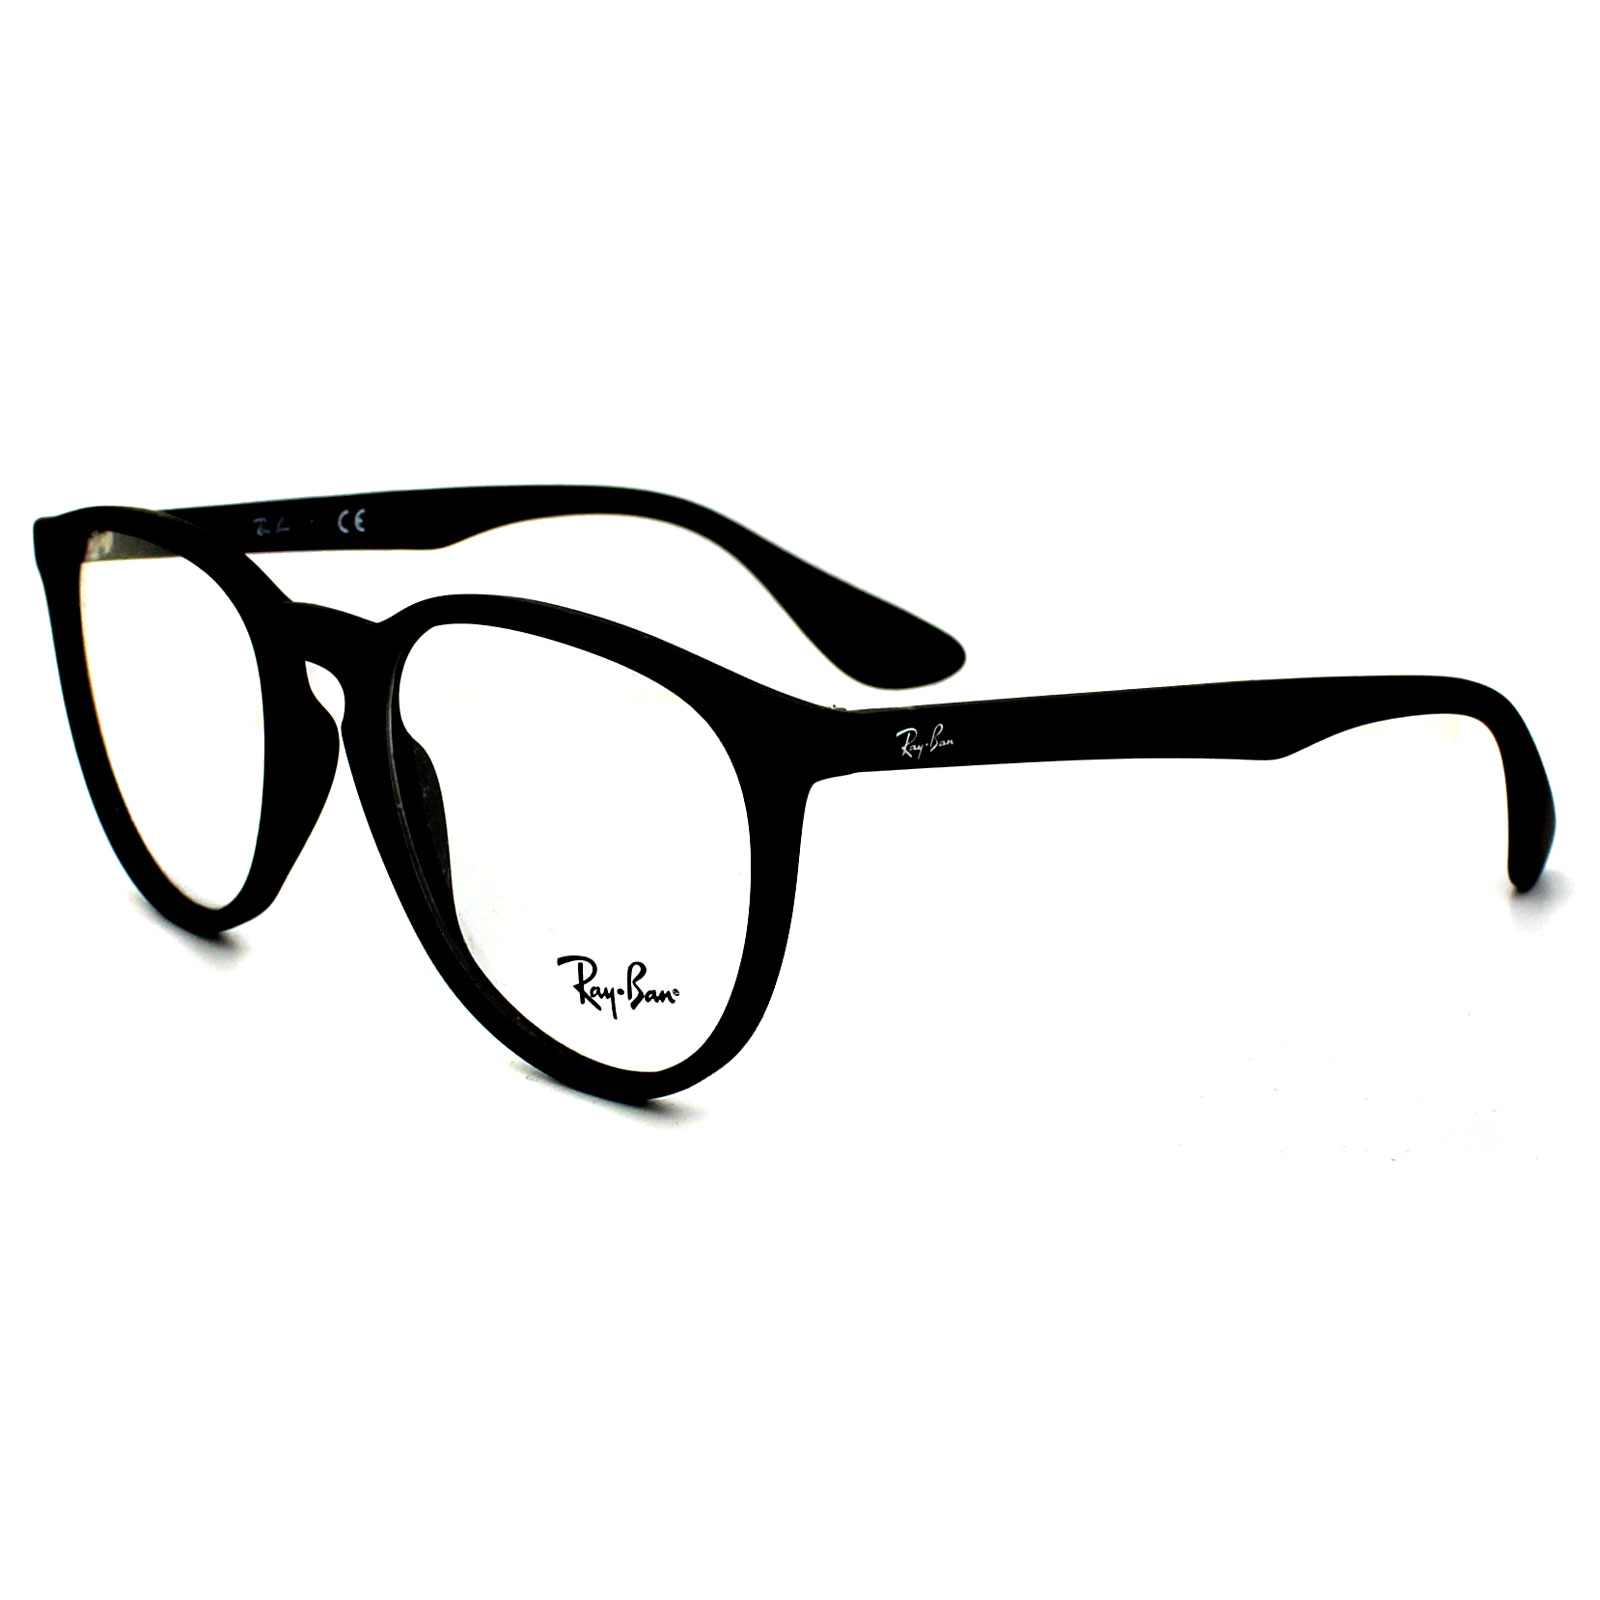 Ray-Ban Glasses Frames 7046 5364 Rubberised Black Clear | eBay